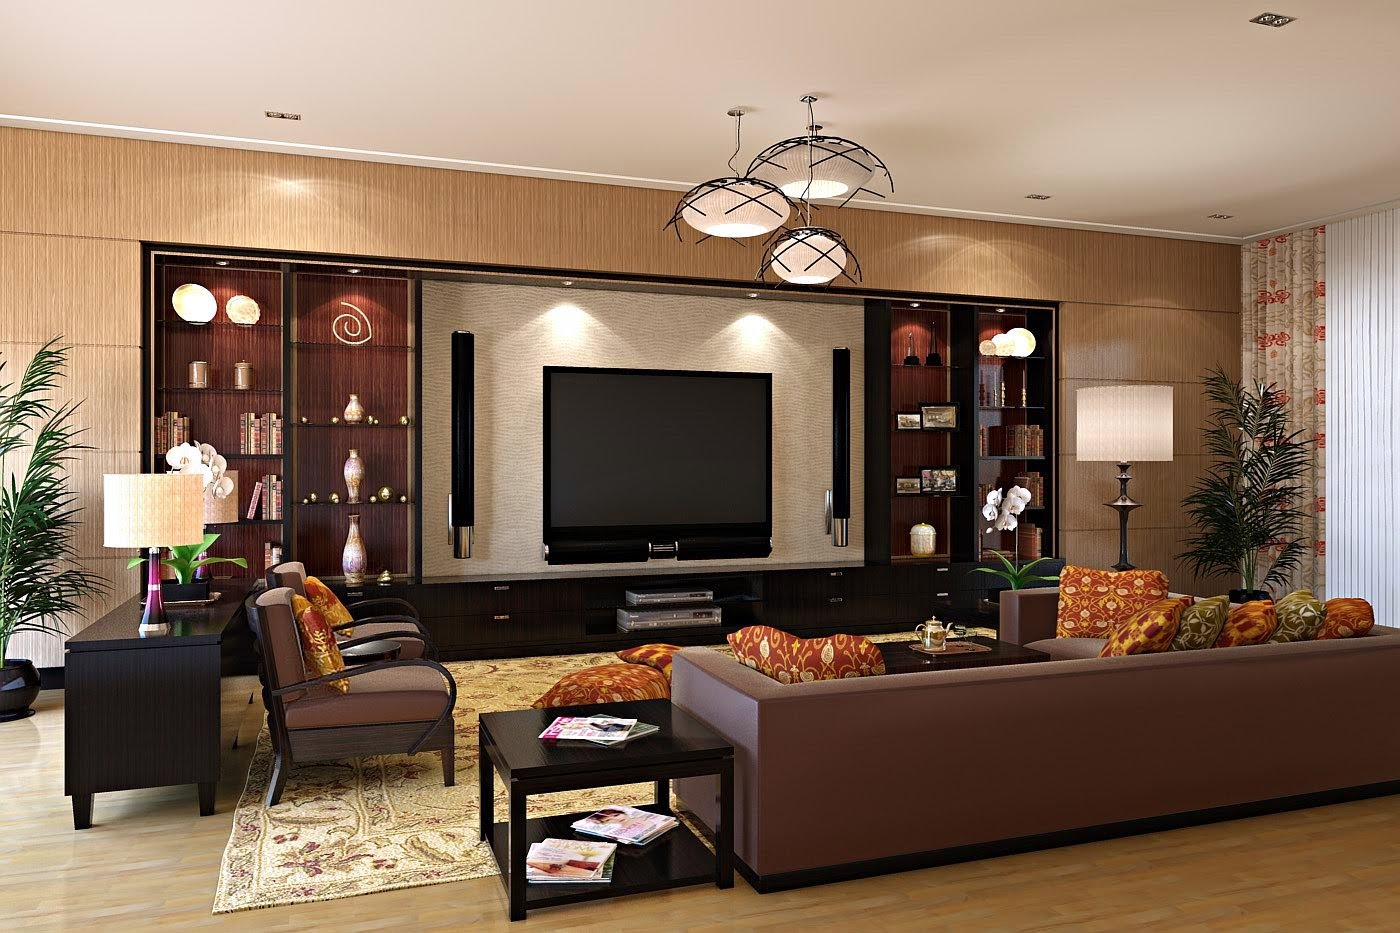 Wall Cabinet Design For Lcd : Modern tv unit design ideas for bedroom living room